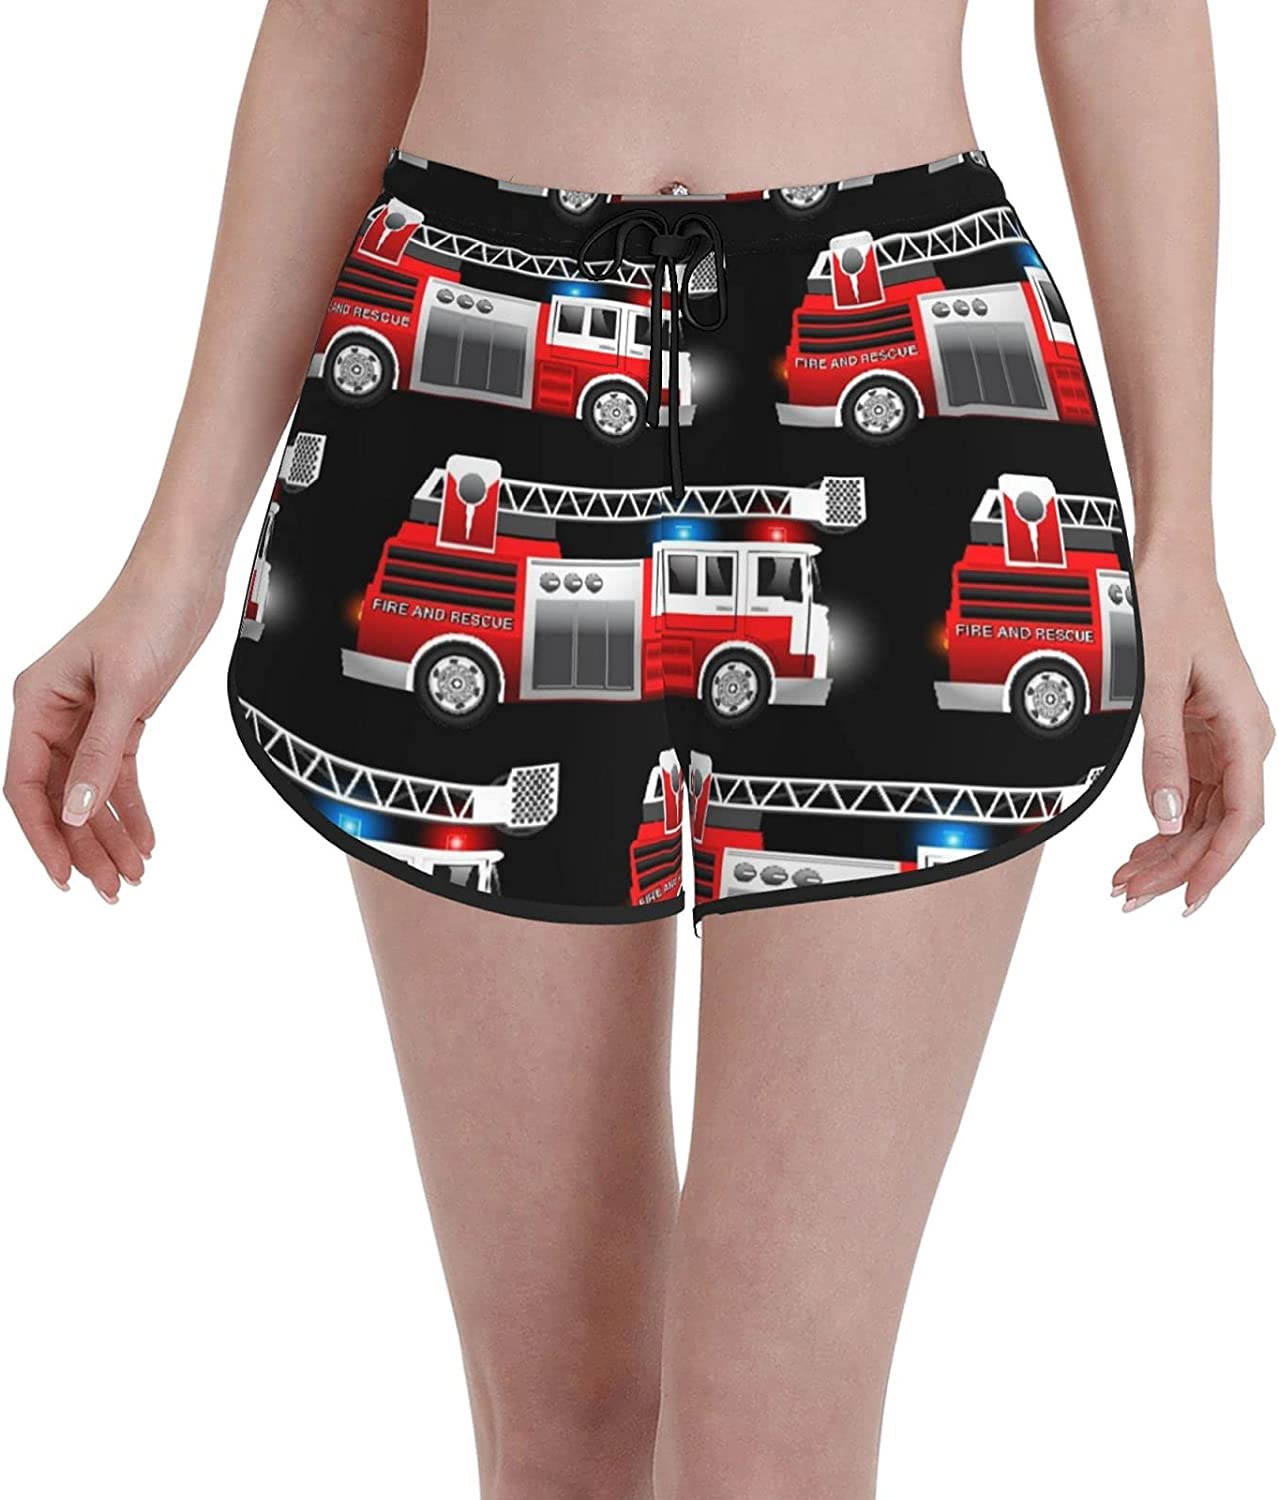 Comfortable Casual Board Shorts for Women Girls,A Red Fire and Rescue Truck,Quick Dry Swim Trunks Beach Wear Sportswear,S